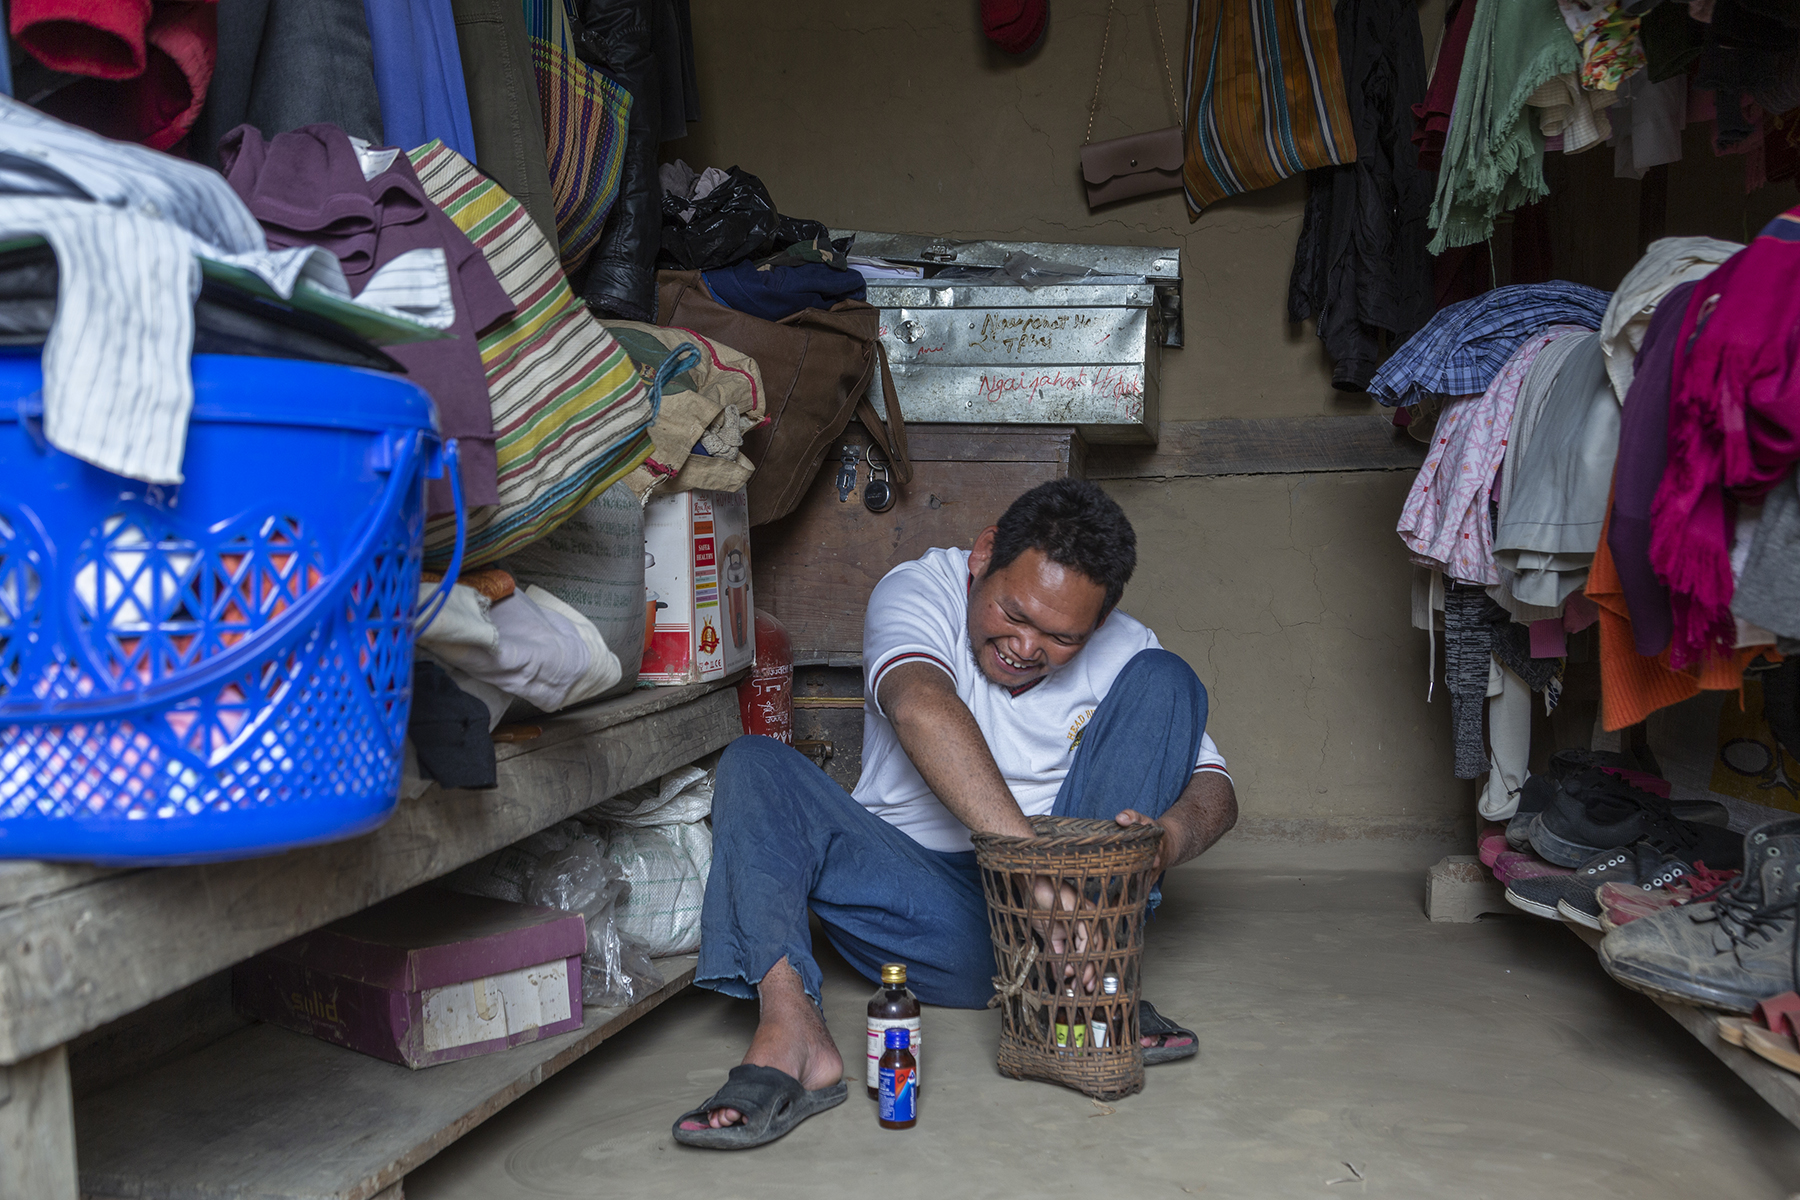 Sohkho in white T-shirt and bluish grey pants sits in a cramped space on the mud floor of a room, smiling as he reaches his hand into a narrow, woven cane basket containing a couple of small medicine bottles. Two similar bottles rest on the floor next to his foot. He is wedged between two wooden racks overflowing with clothes, cloth bags, cardboard boxes and shoes. Behind him are two tin trunks on top of a wooden chest.